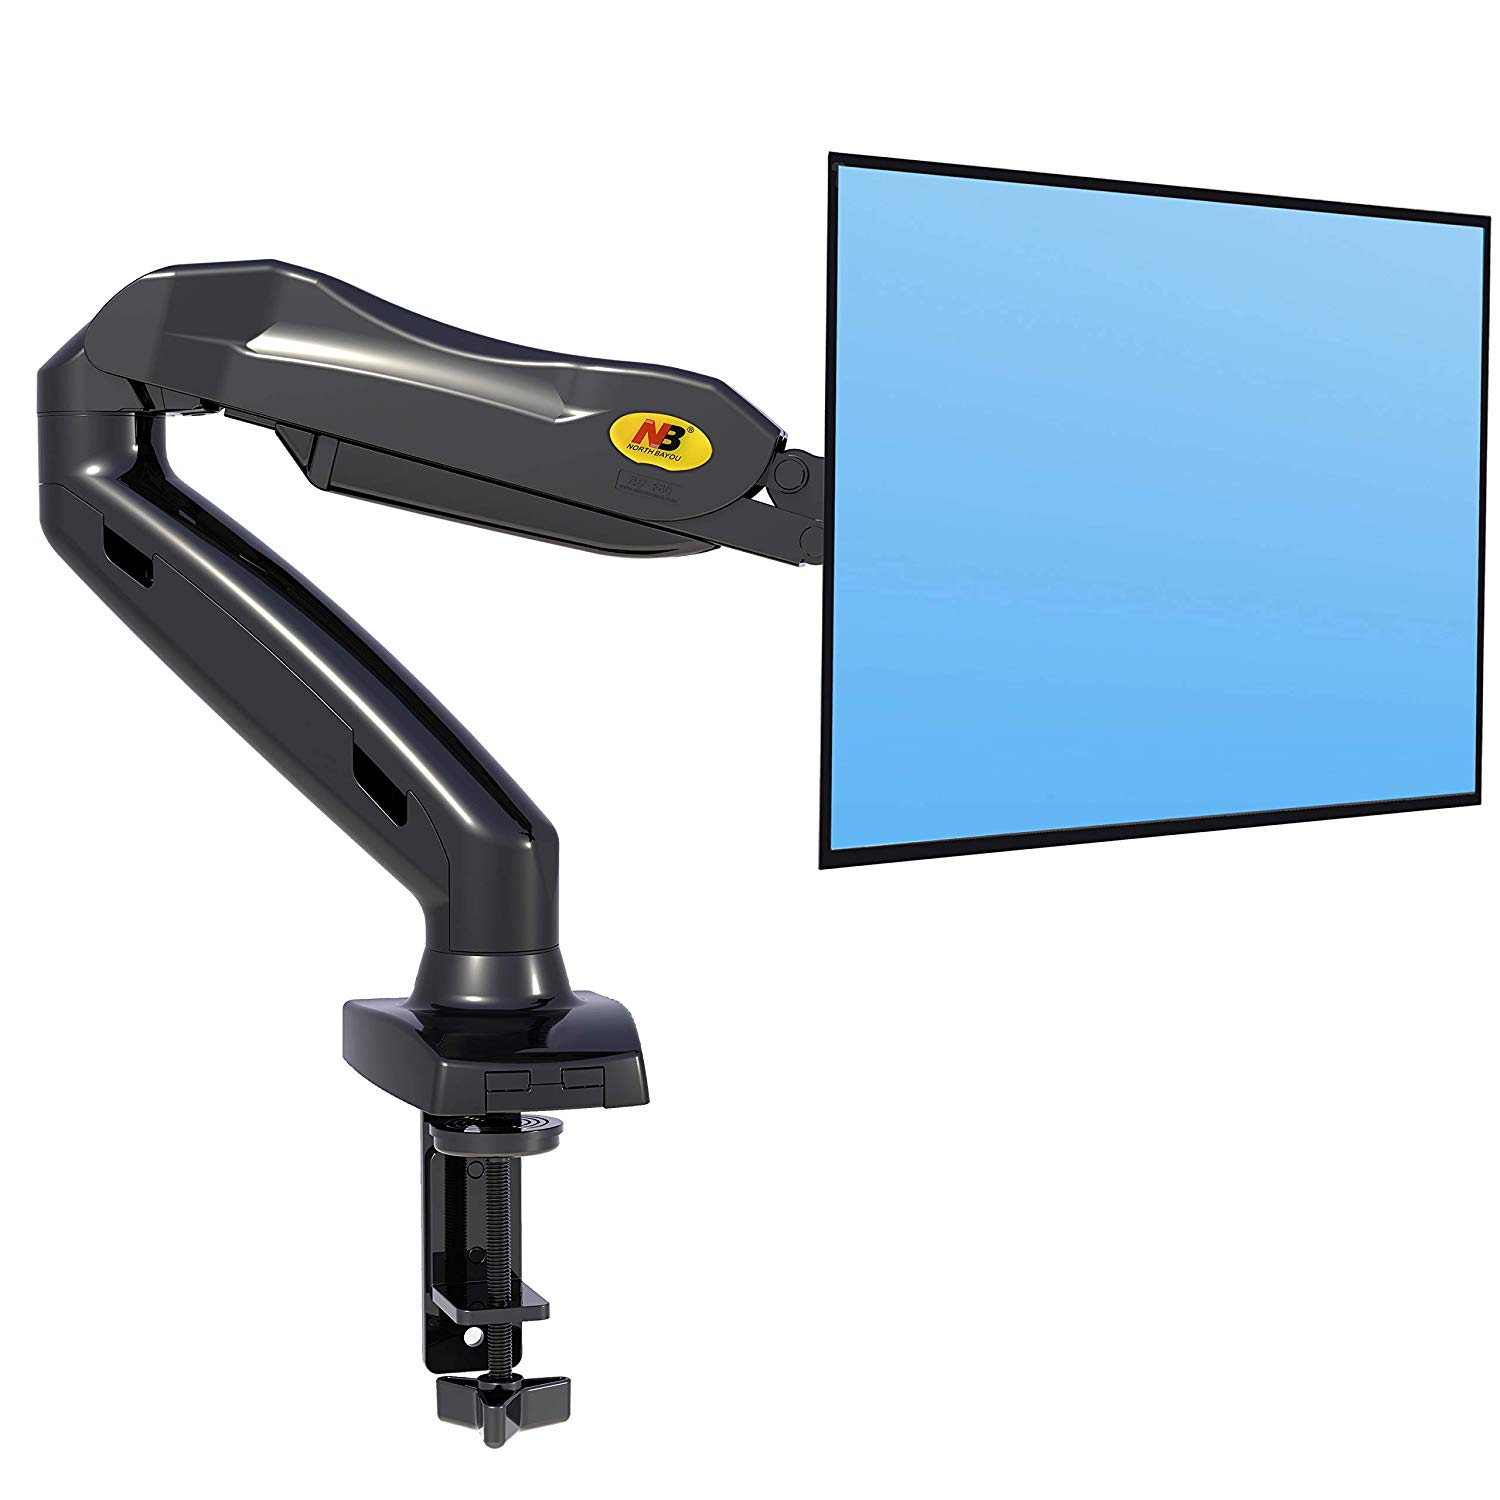 "North Bayou F80 17""-27"" Full Motion Ergonomic Monitor Arm Adjustable Gas Spring Mount Tilt Swivel (2kg to 6.5kg Loading)"